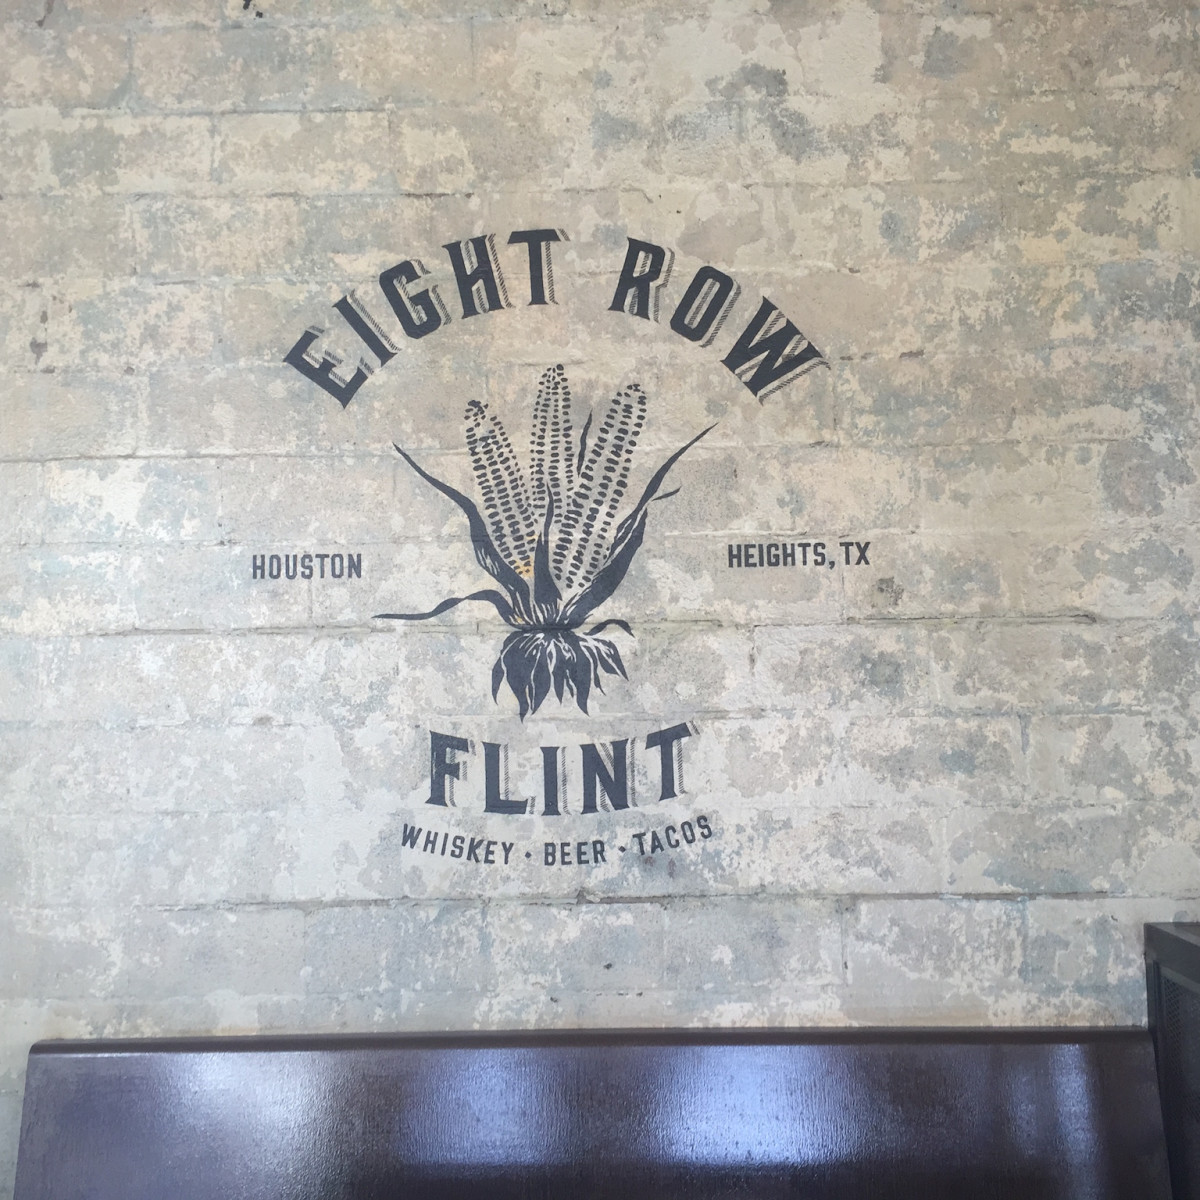 Eight Row Flint interior